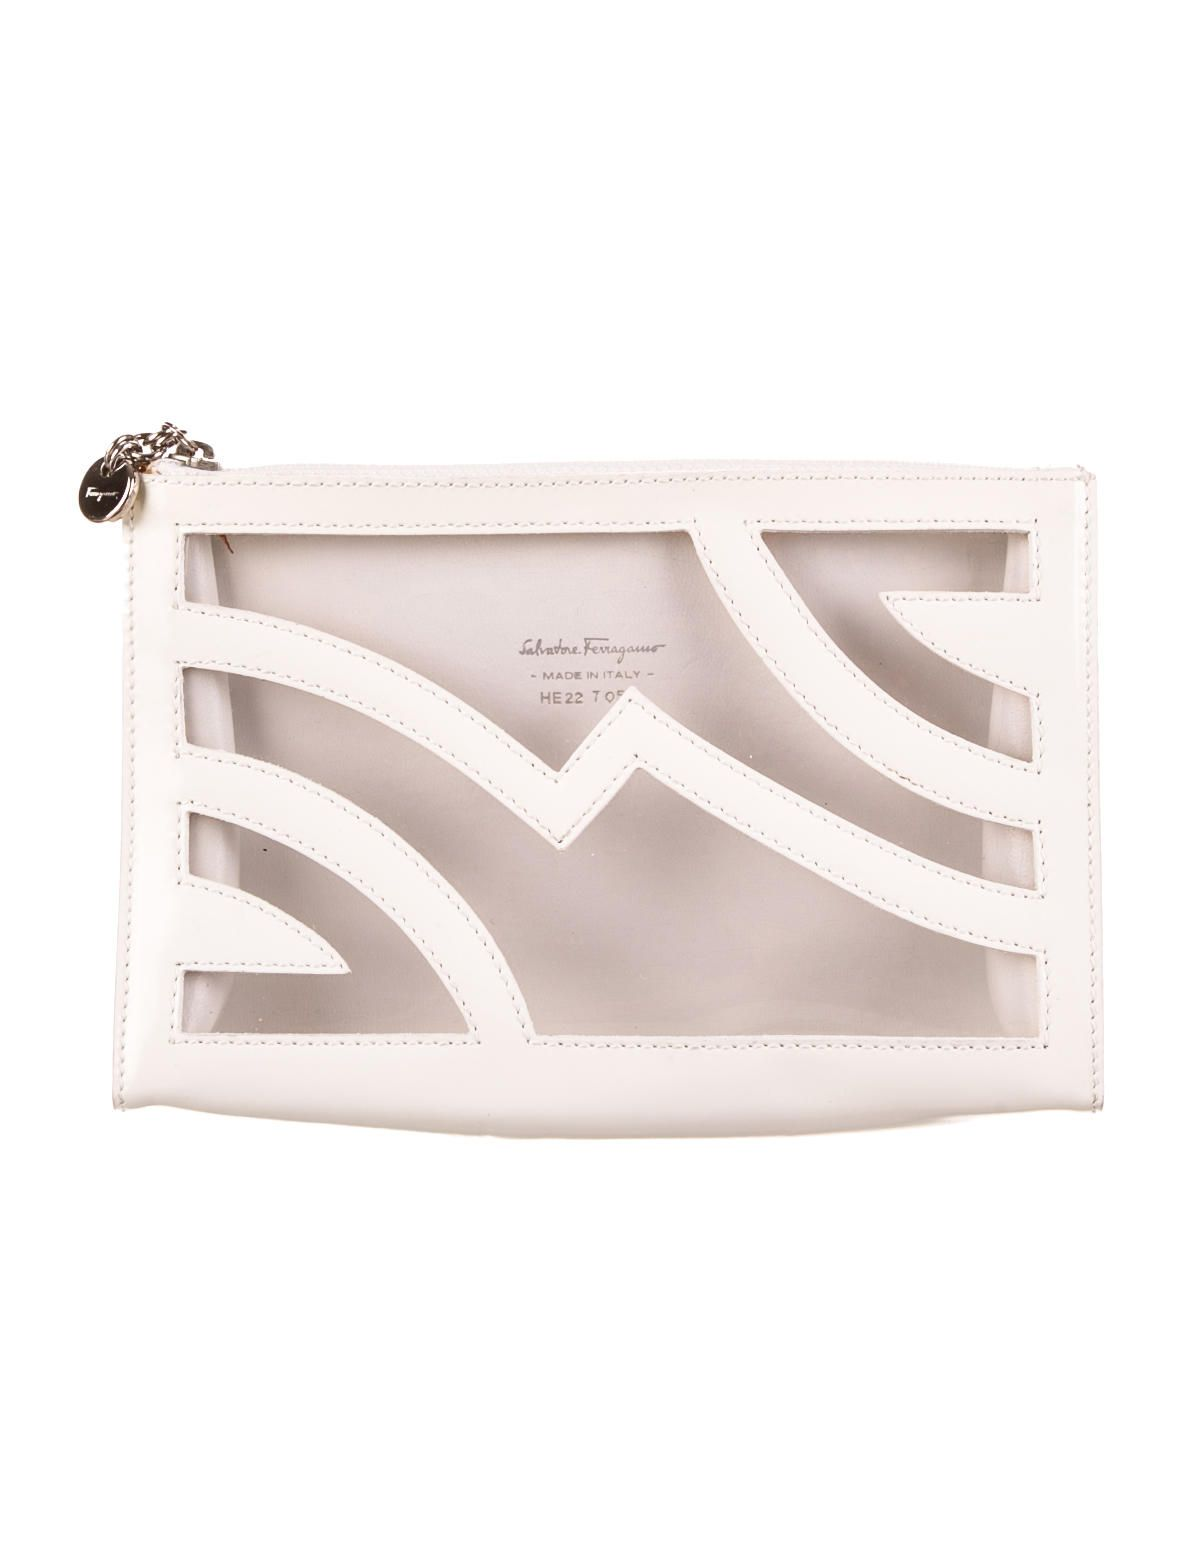 White coated leather Salvatore Ferragamo cosmetic bag with laser cut print  featuring clear PVC underlay and top zip closure. 4099d13610484